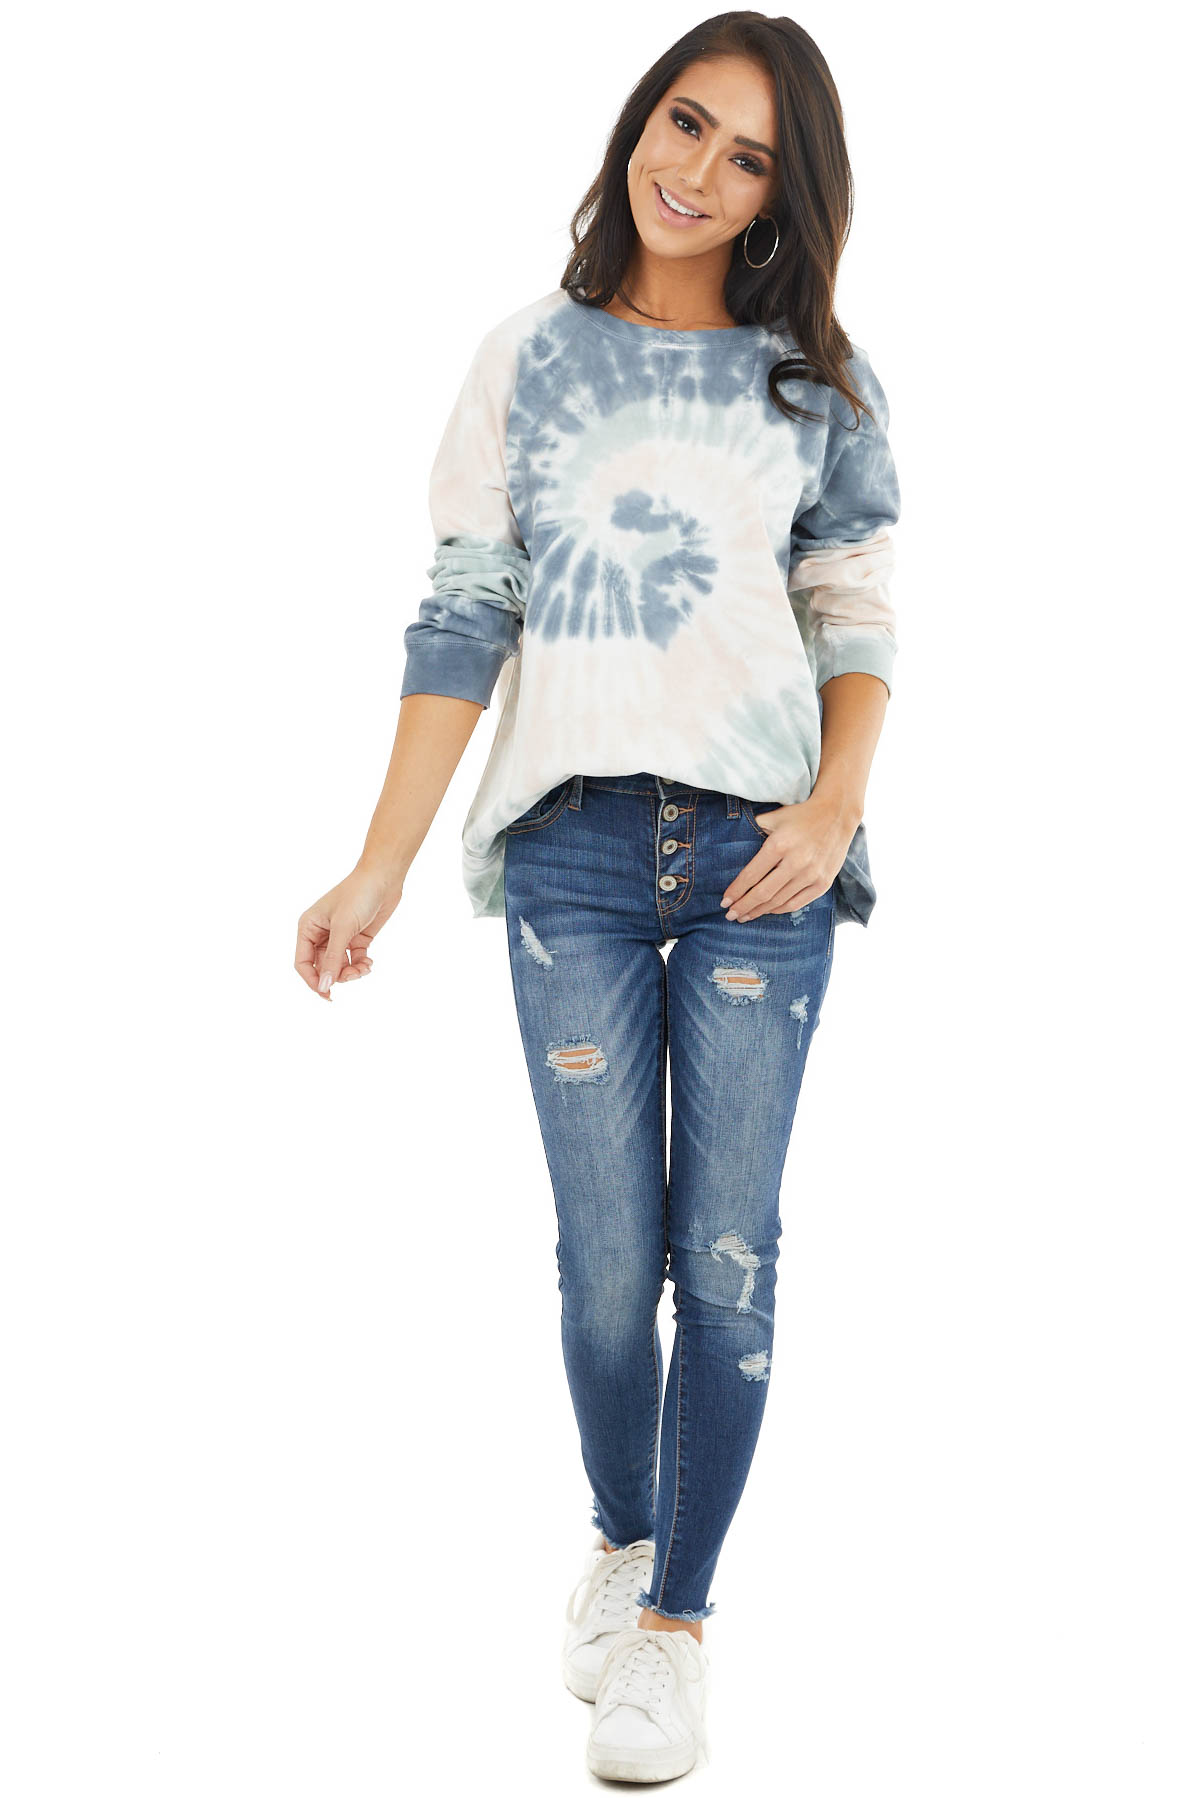 Charcoal and Blush Tie Dye Pullover Top with Long Sleeves